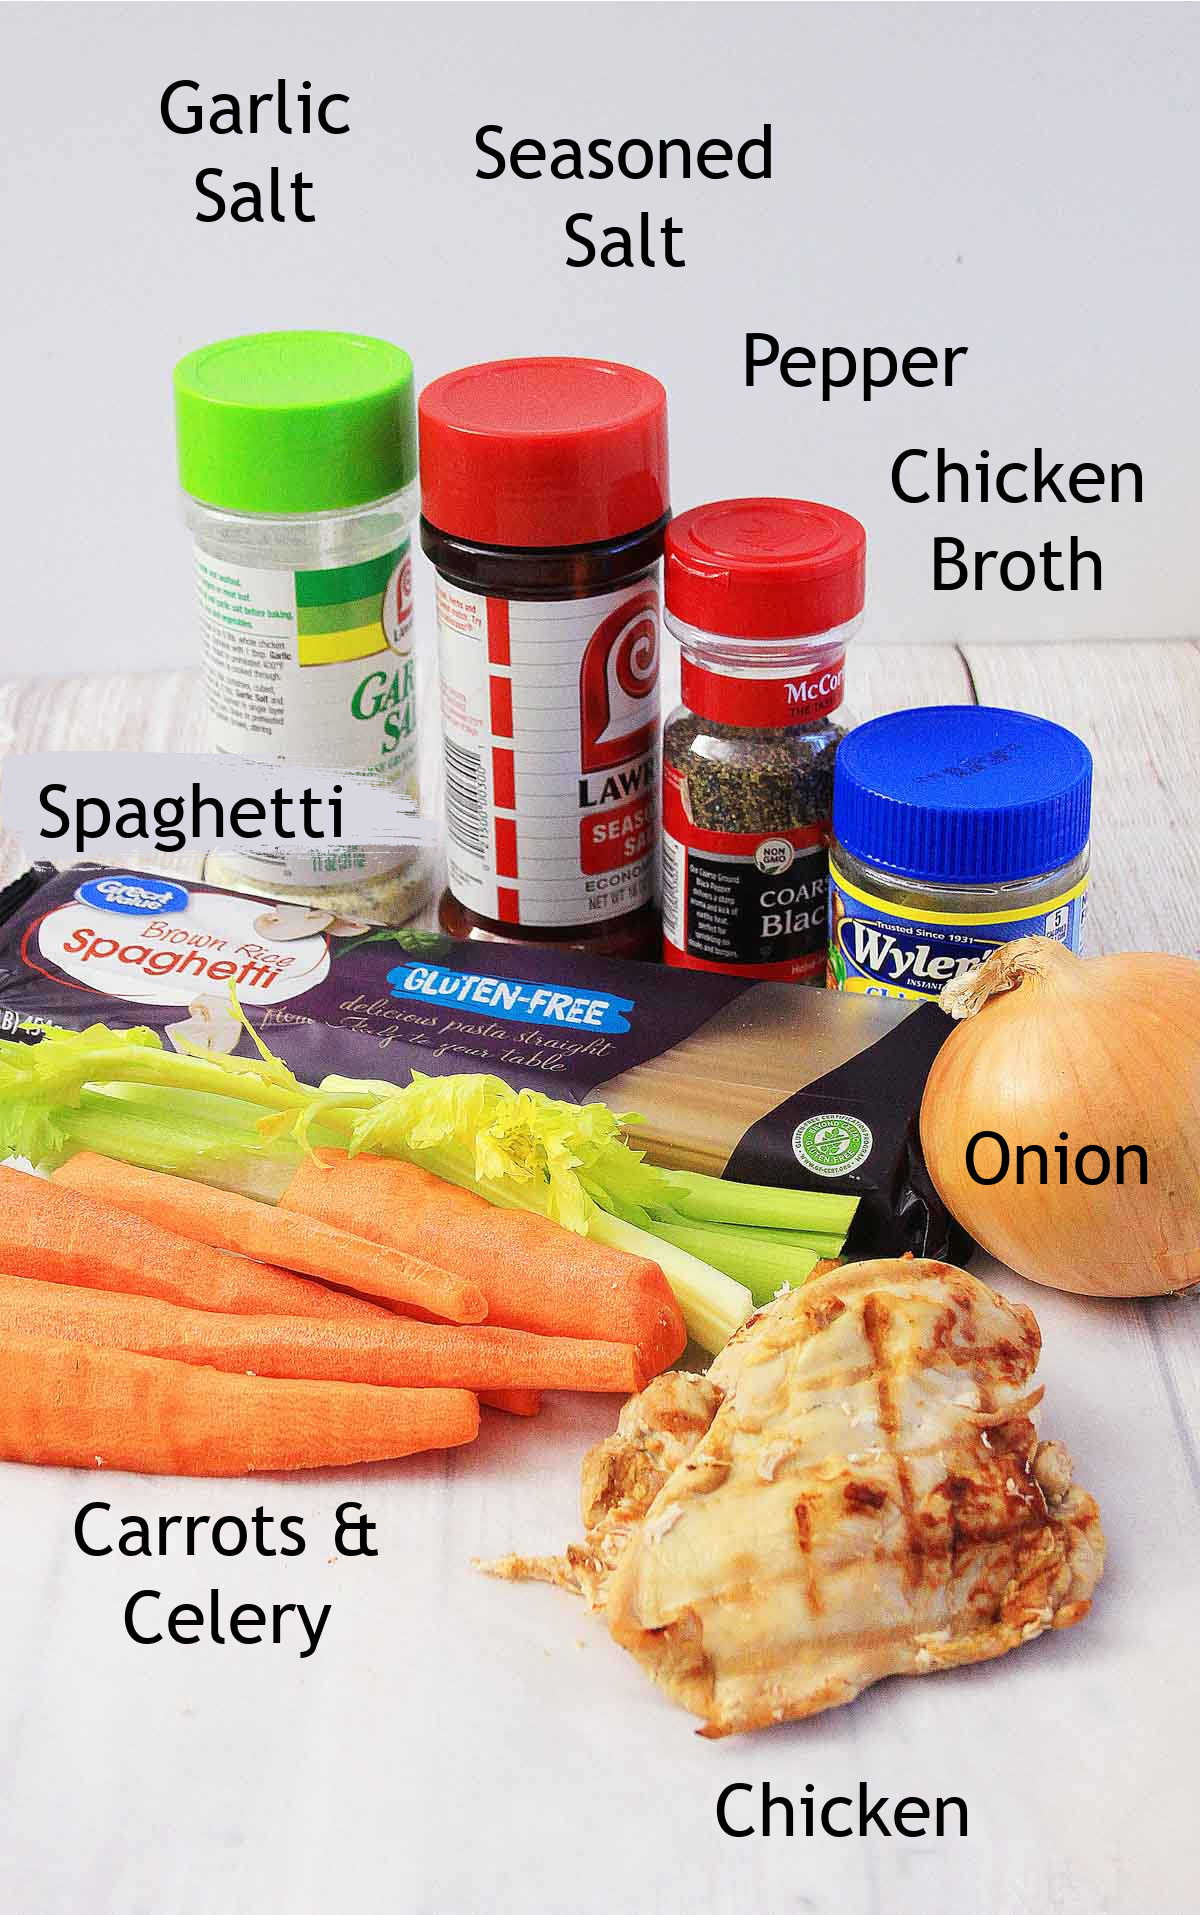 all of the ingredients for the soup sitting on the table with labels.